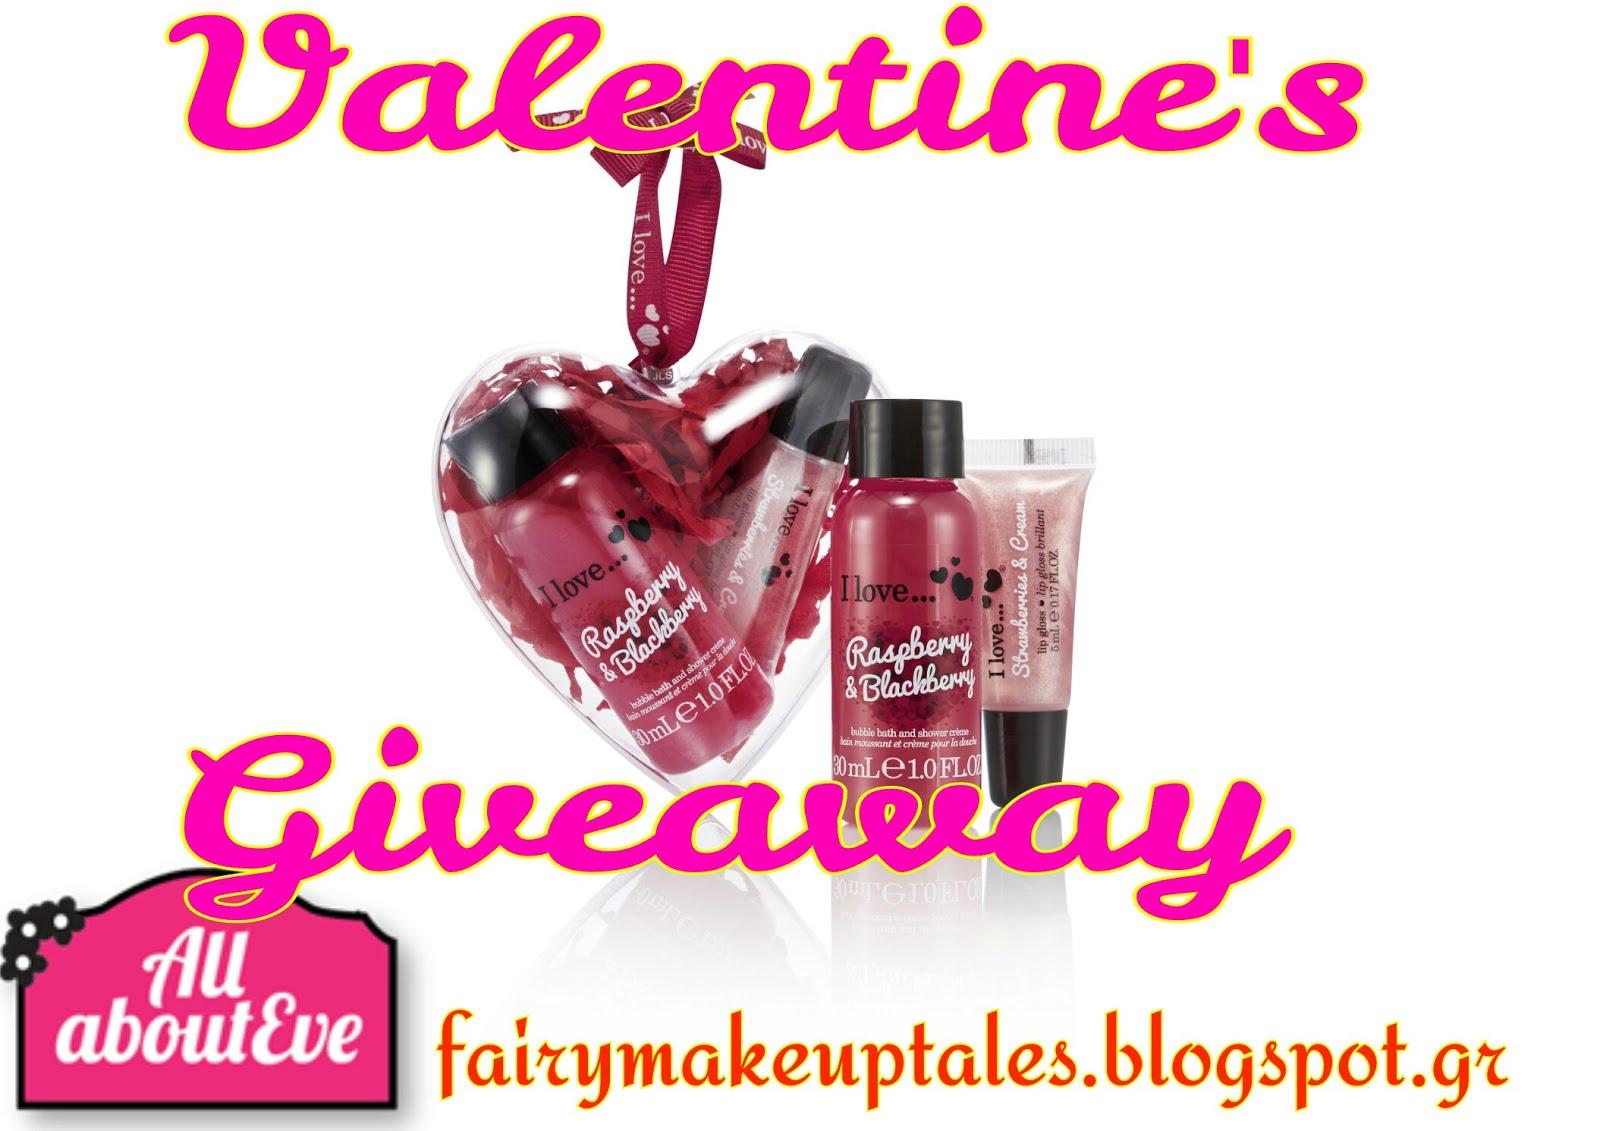 Valentine's Giveaway for 2 lucky Fairies!